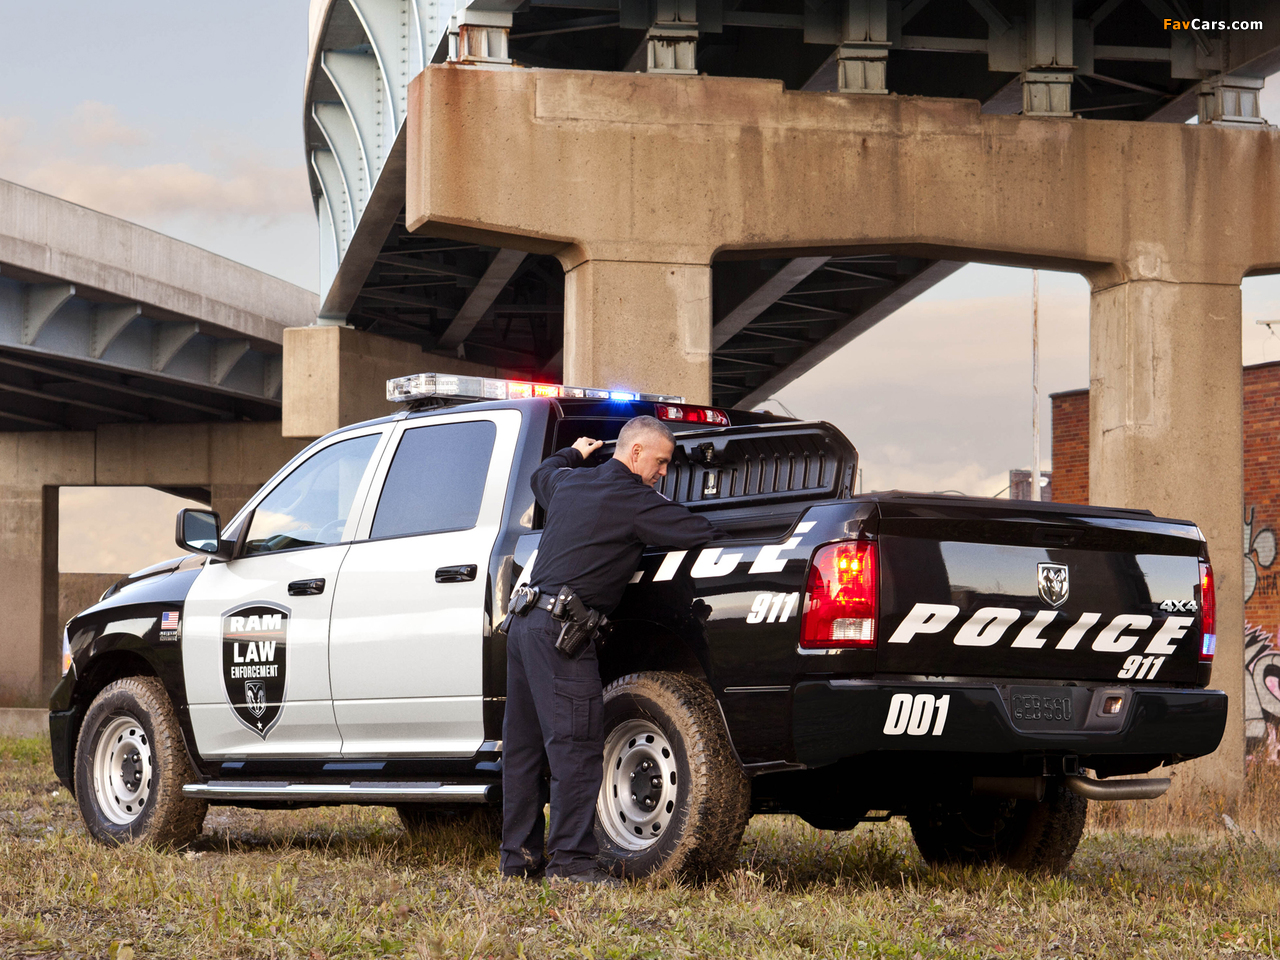 Ram 1500 Crew Cab Special Service Package Police Truck 2011 pictures (1280 x 960)